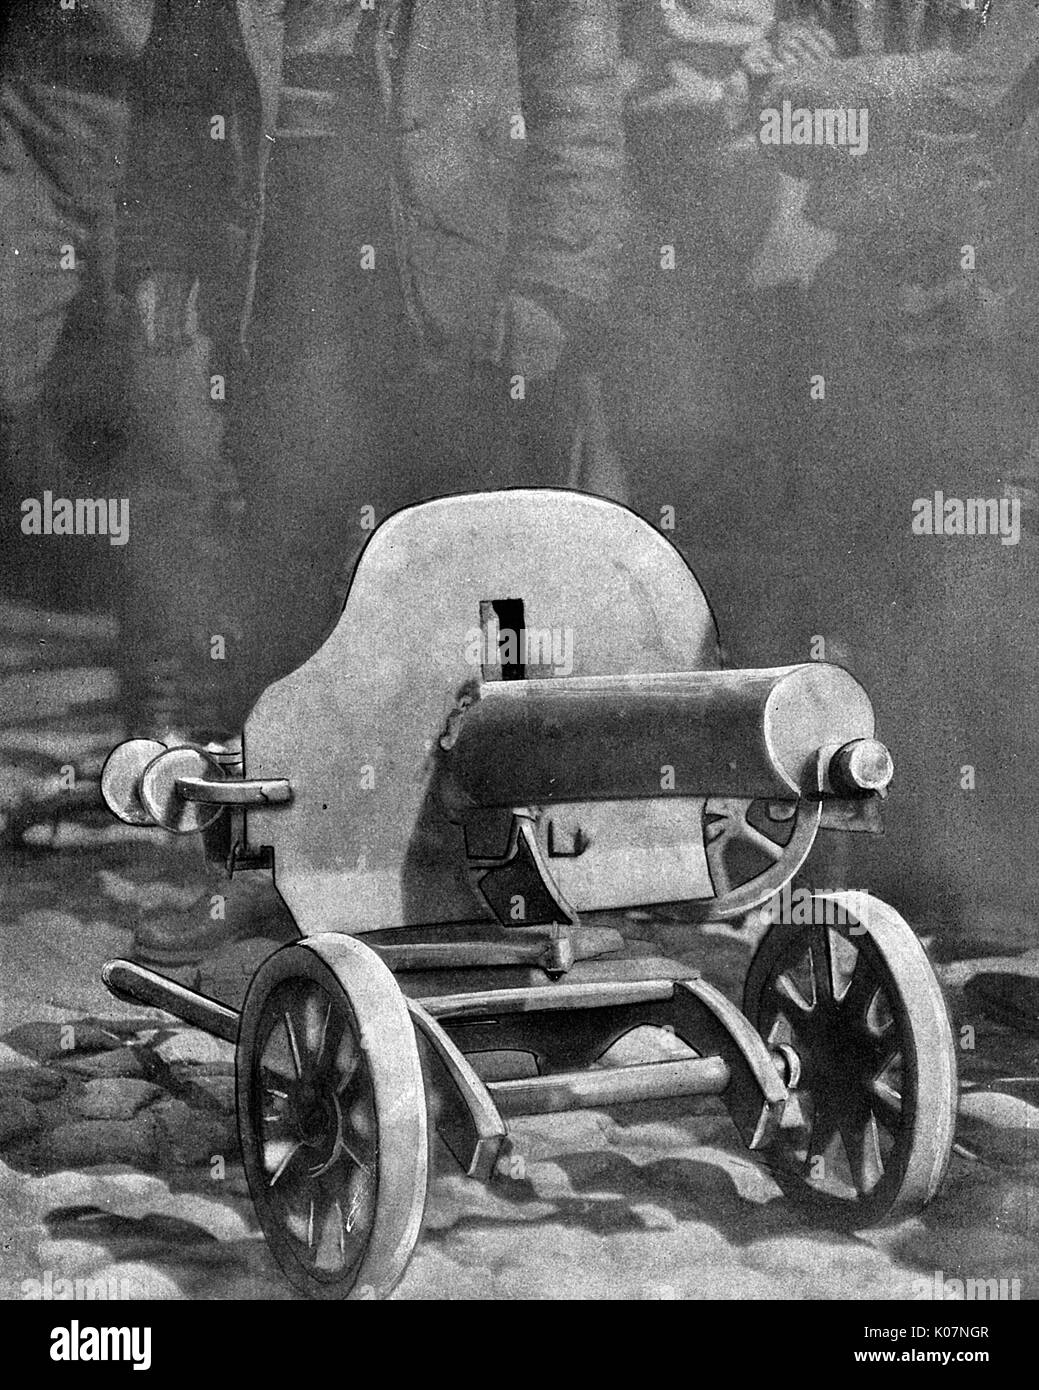 Machine gun mounted on wheels, used by the Bolsheviks during the Revolutionary period in Russia.      Date: circa 1917 - Stock Image